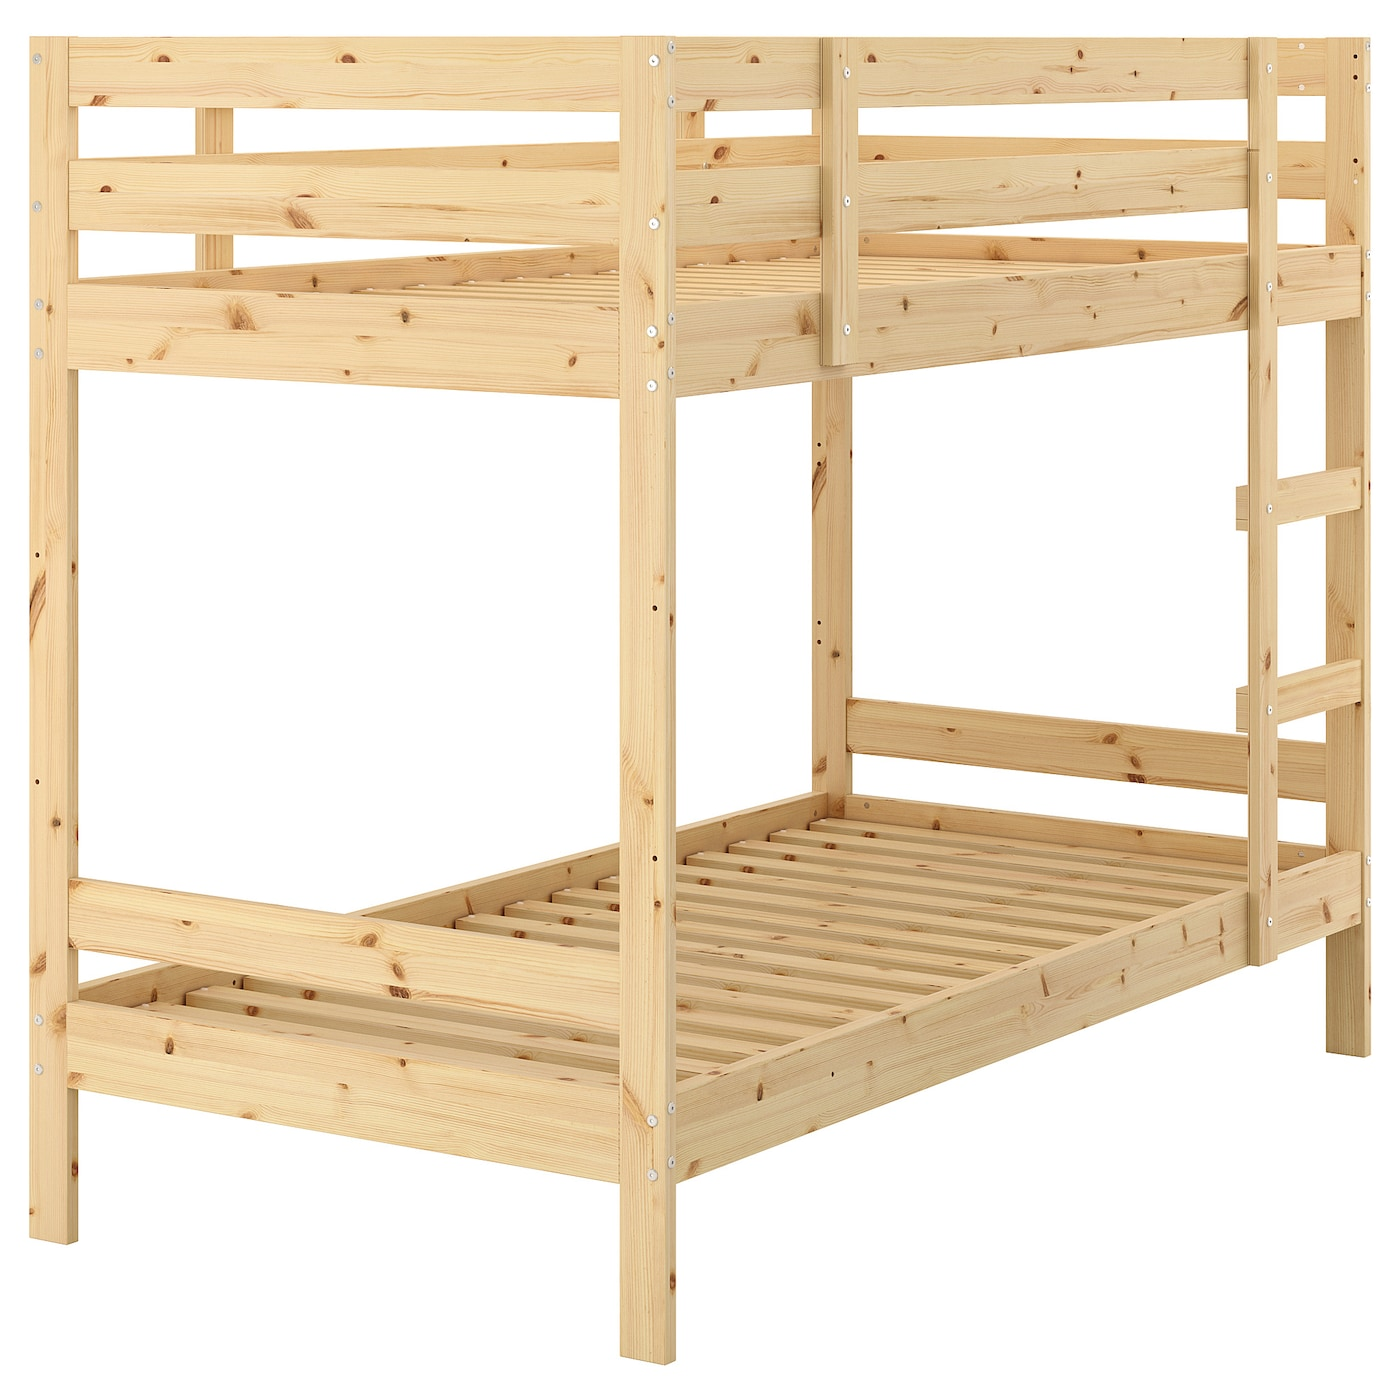 IKEA MYDAL Bunk Bed Frame Made Of Solid Wood Which Is A Hardwearing And Warm